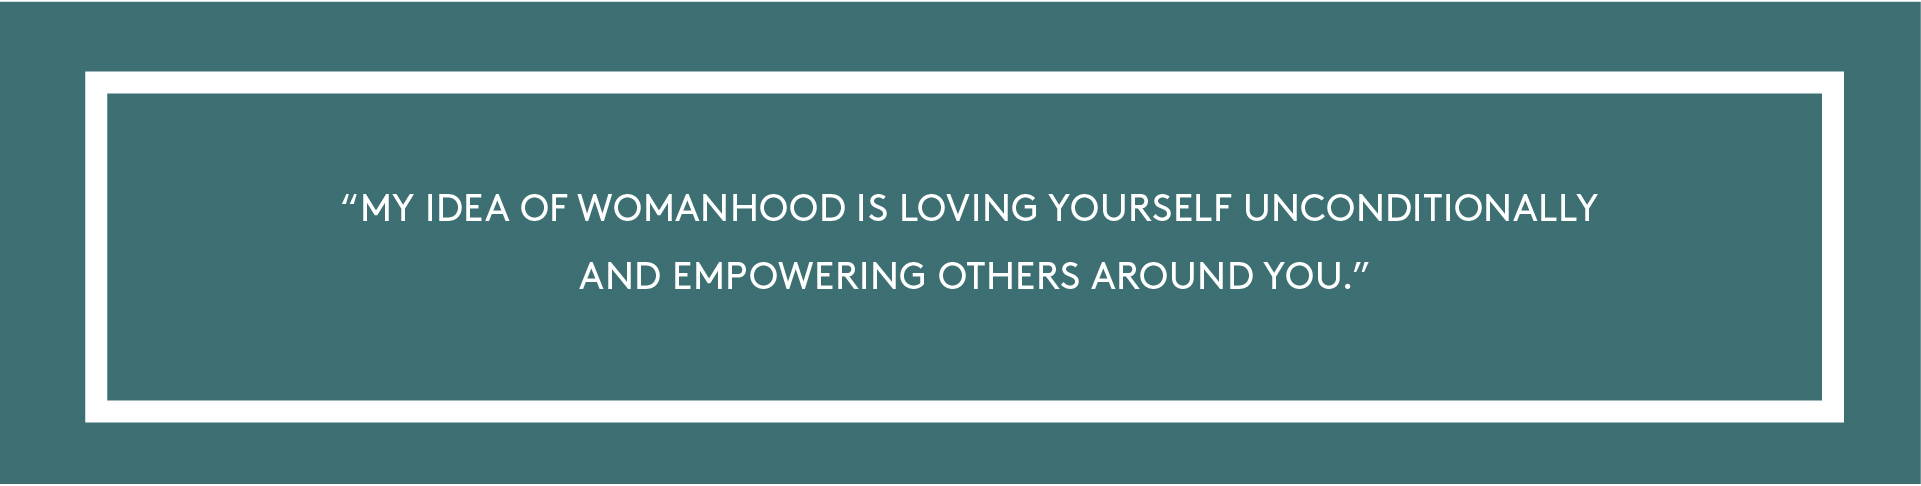 """""""My idea of womanhood is loving yourself unconditionally and empowering others around you."""""""